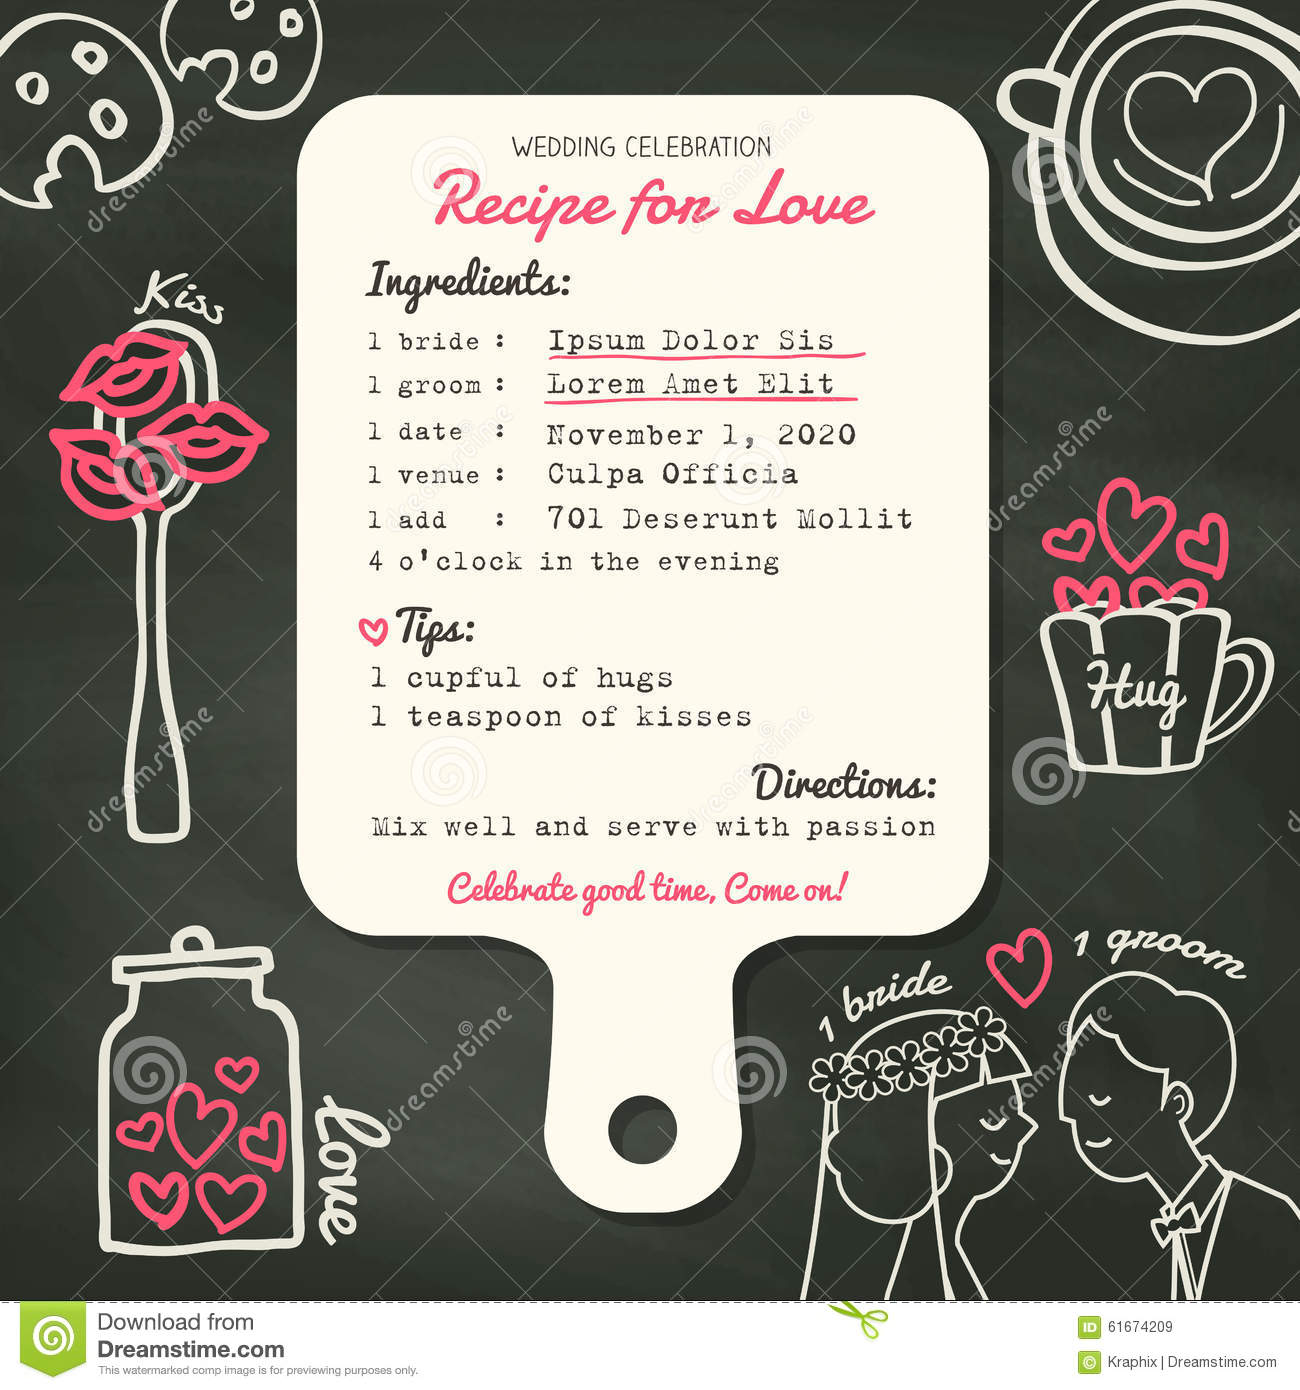 Recipe Card Creative Wedding Invitation Design With Cooking